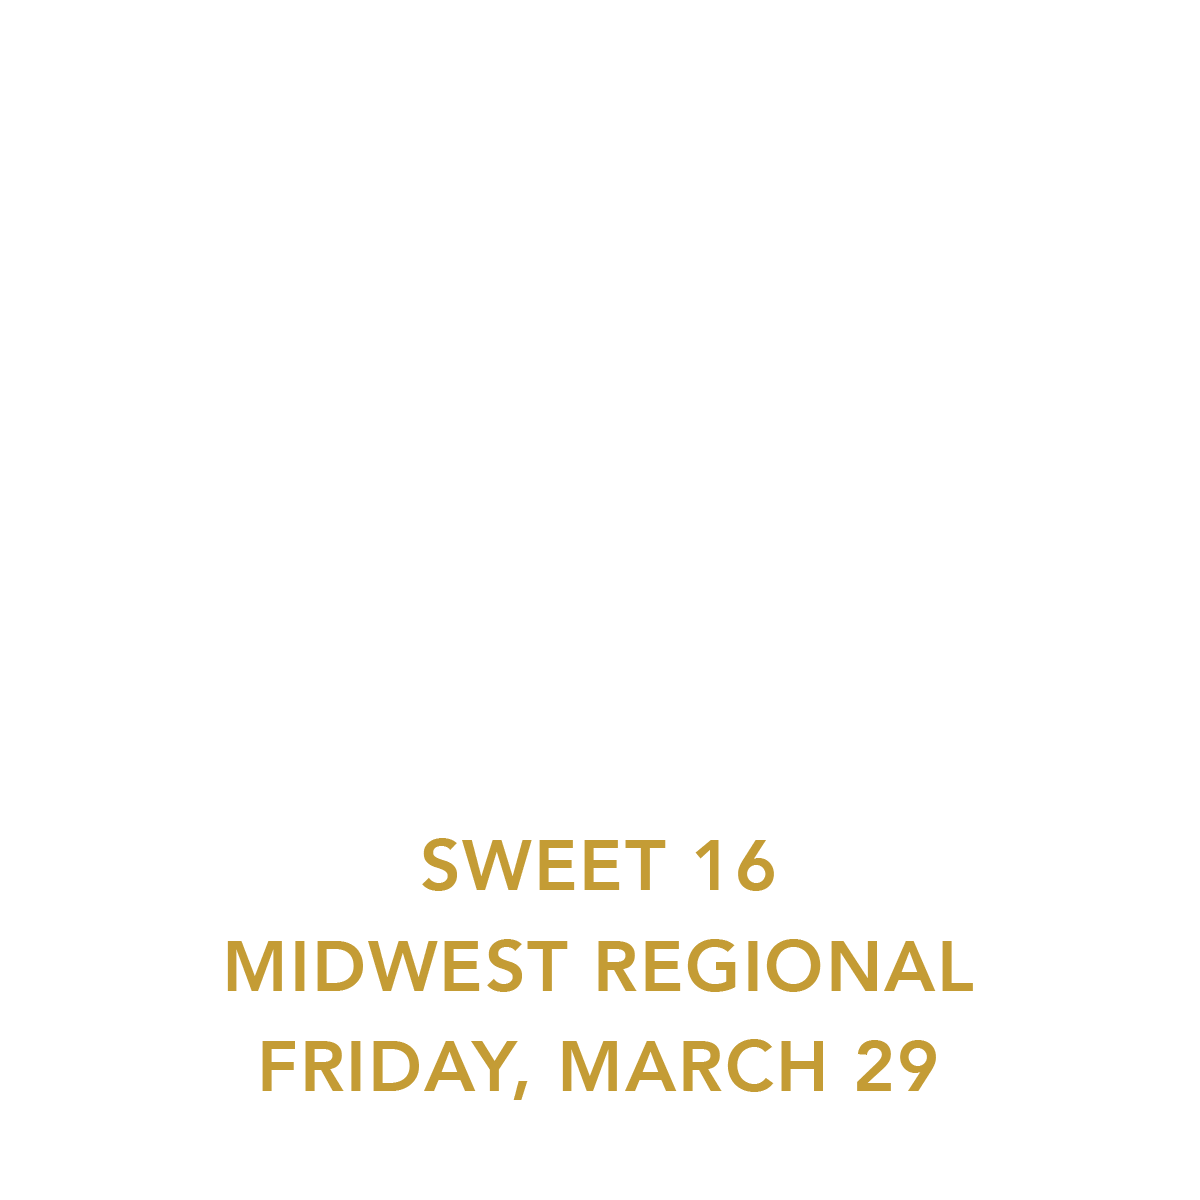 Two Tickets to the Sweet 16